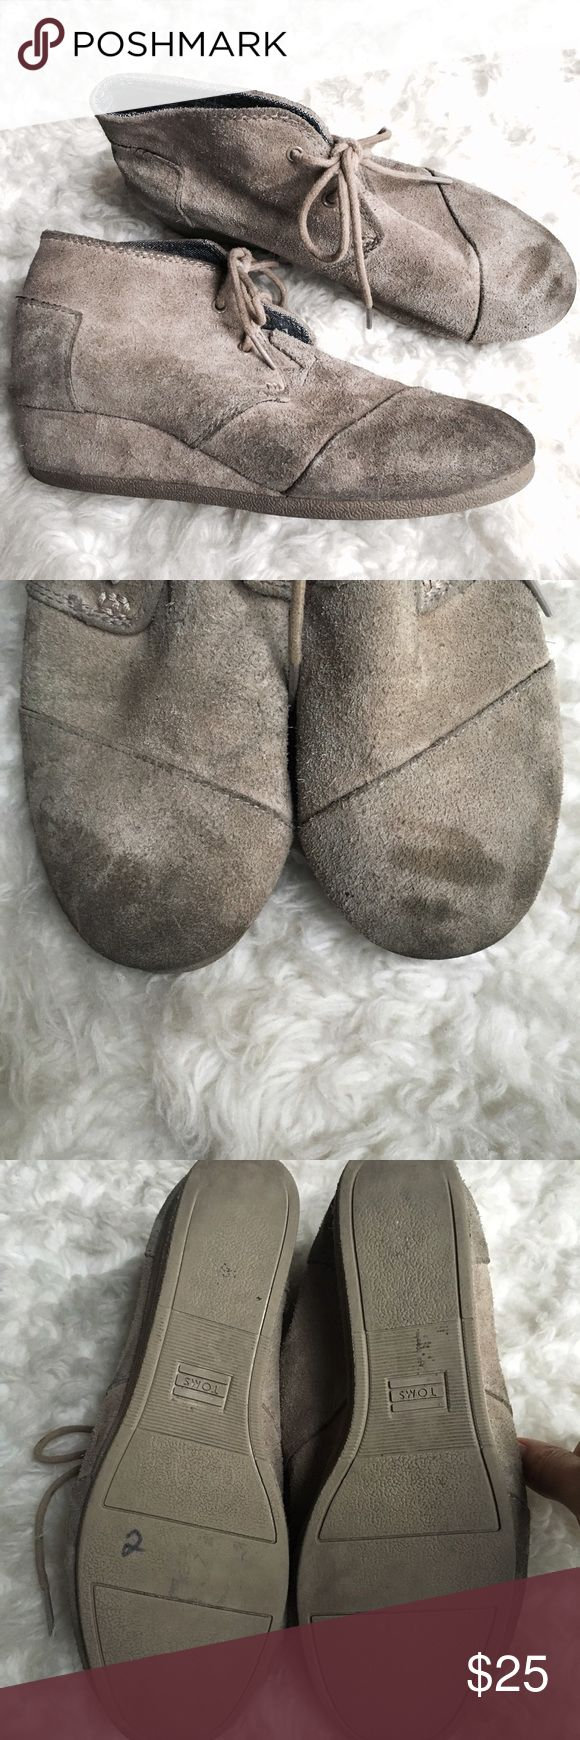 Taupe Suede Youth Desert wedges Sz 4 Used Flawed Taupe Suede | Youth | Sz 4 | Wedges | Flawed | TOMS Shoes Dress Shoes